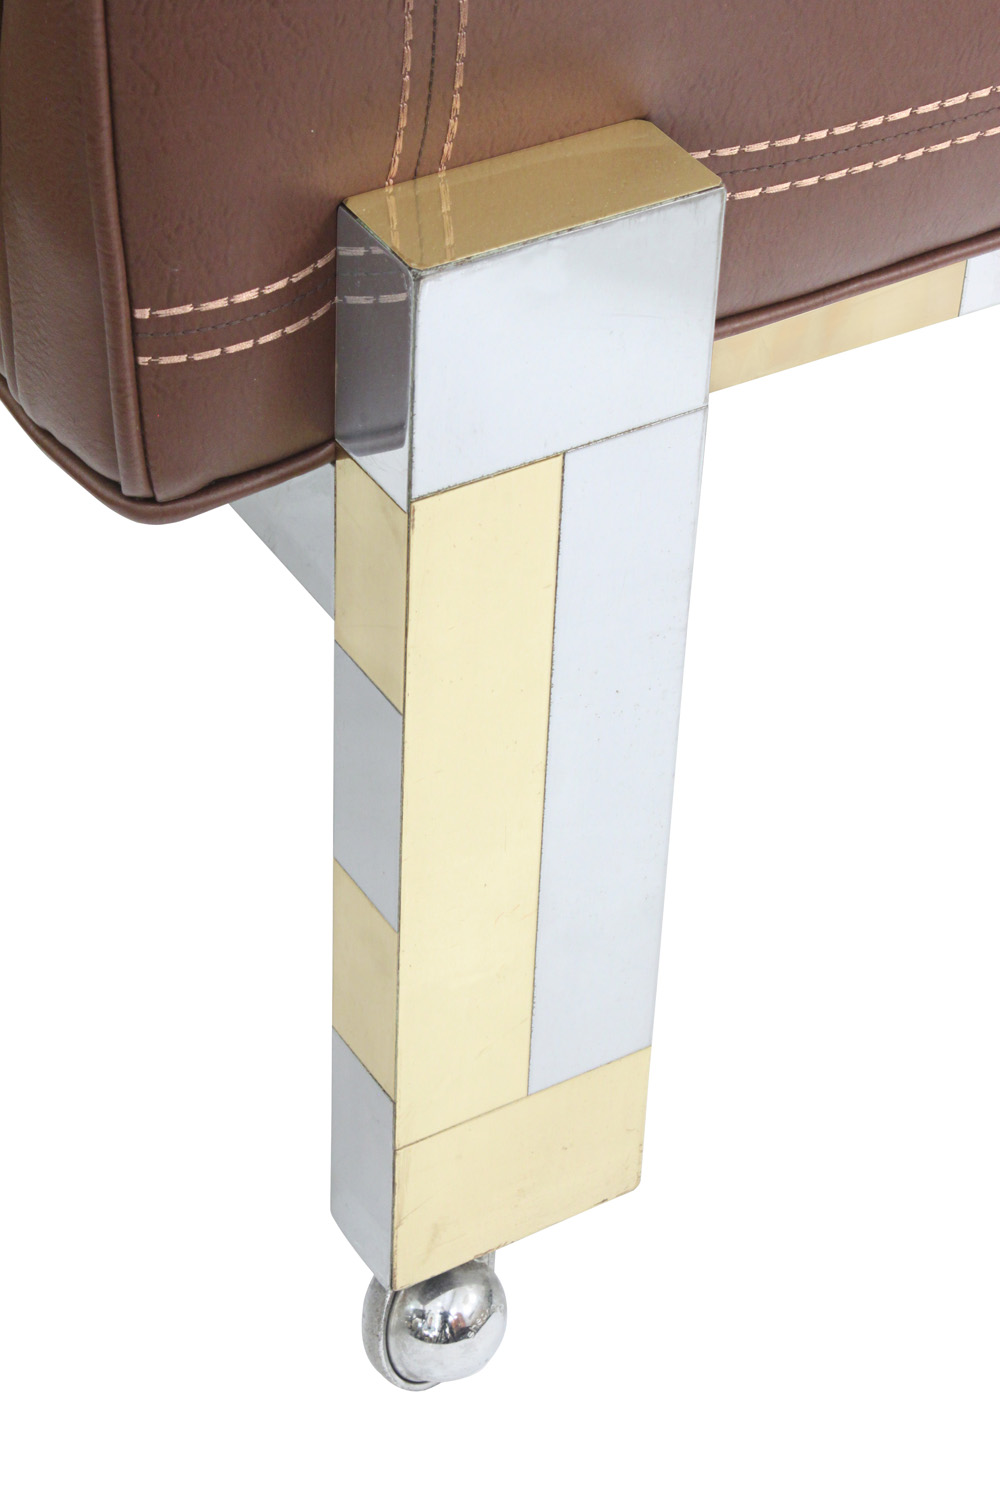 Evans 120 brass+chrome Cityscape armchairs24 detail6 hires.jpg